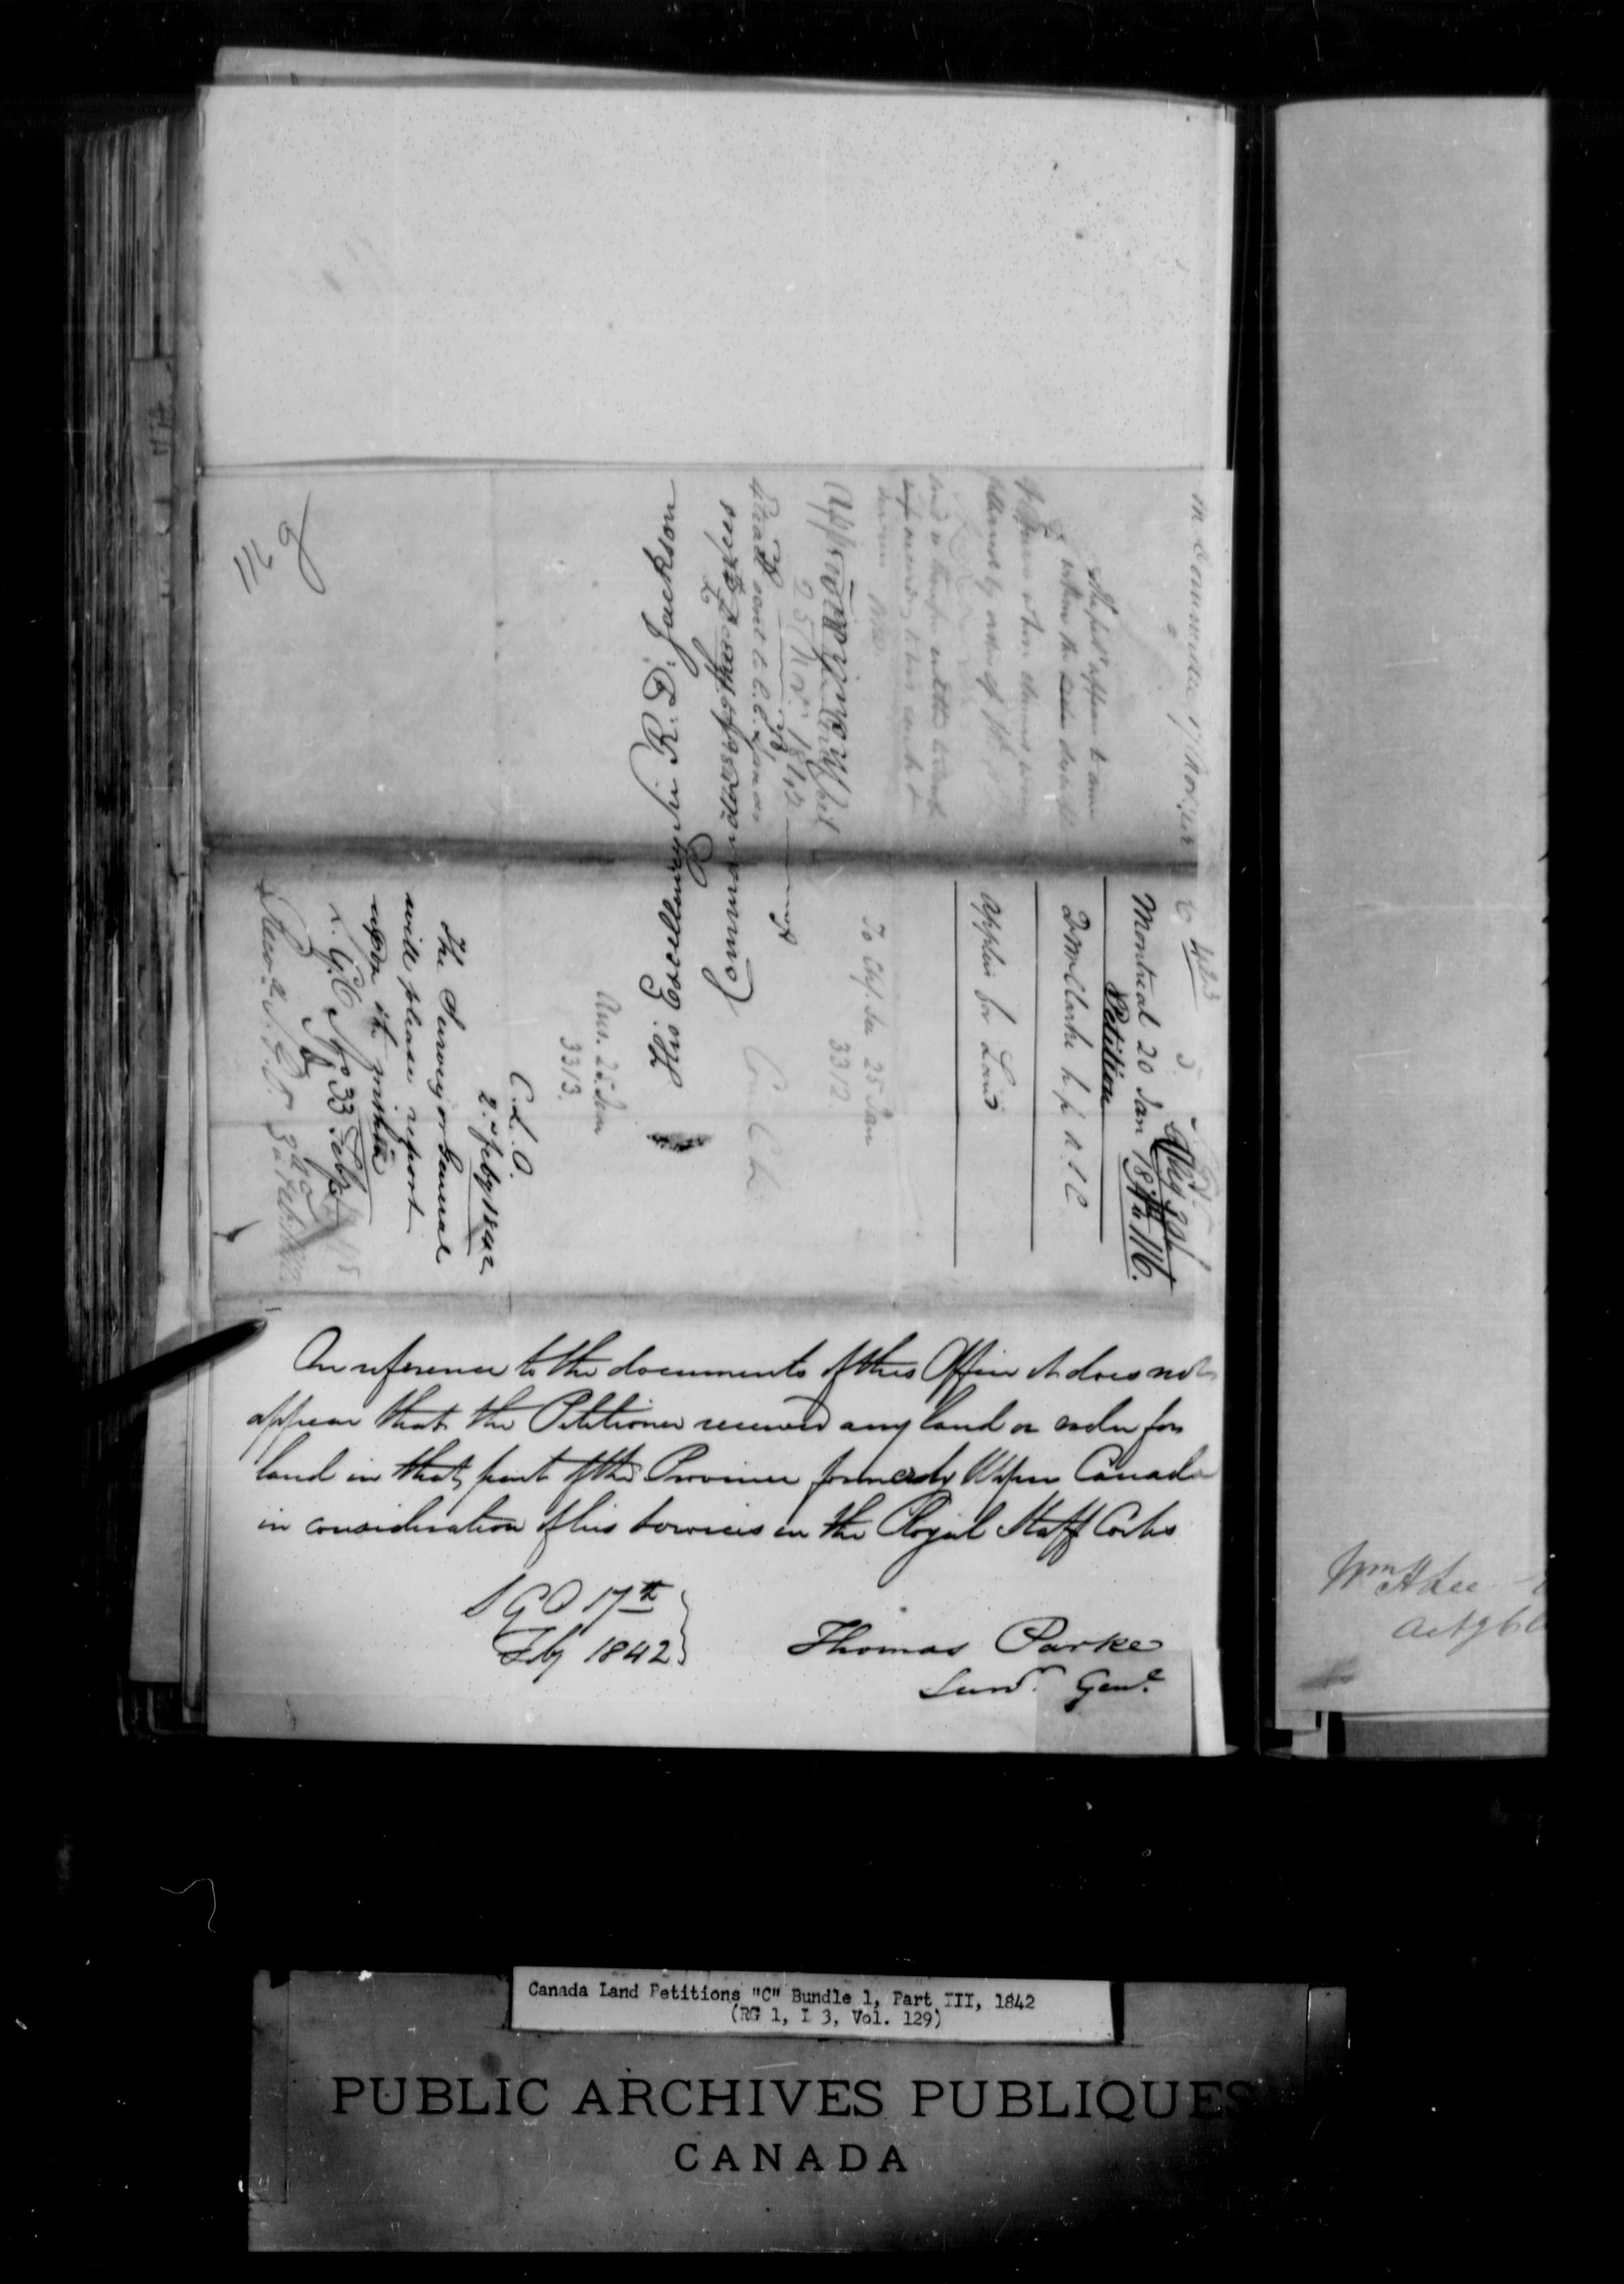 Title: Upper Canada Land Petitions (1763-1865) - Mikan Number: 205131 - Microform: c-1732